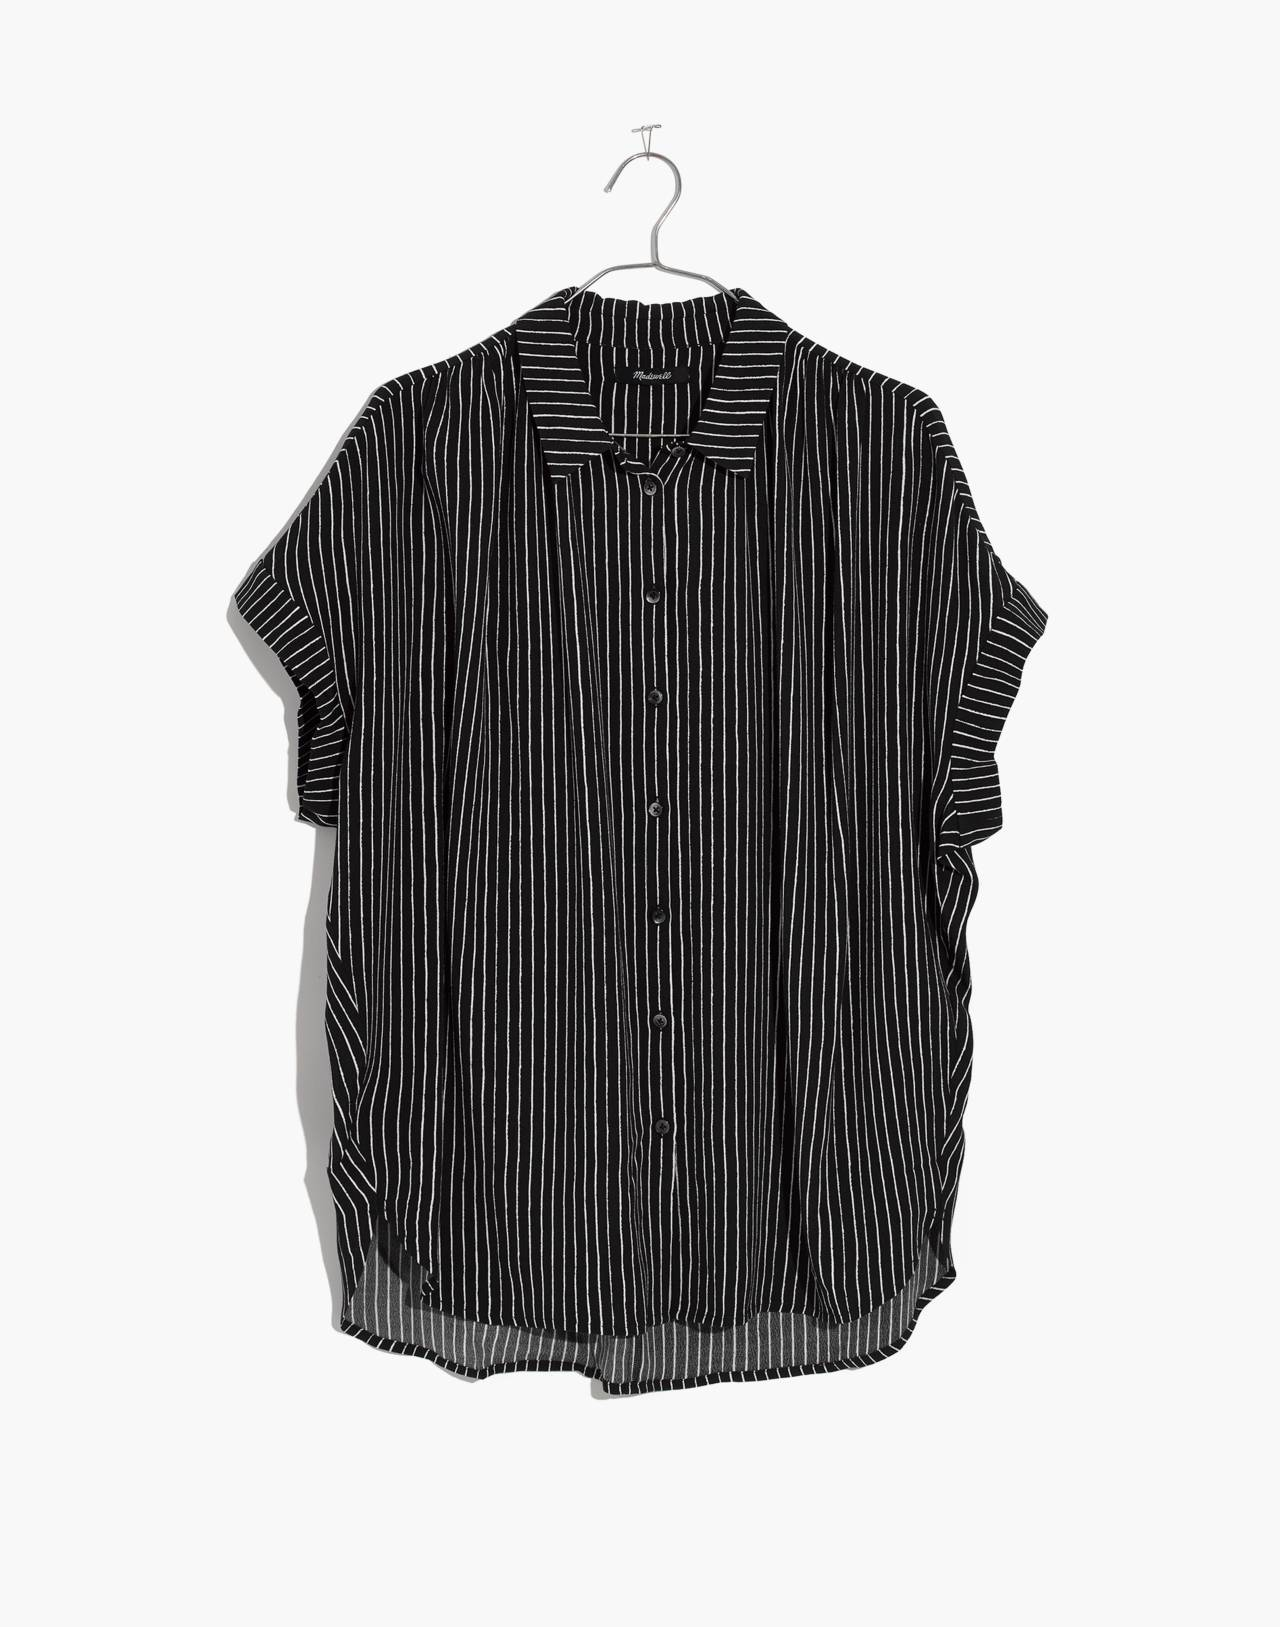 Central Drapey Shirt in Harold Stripe in thin true black image 4